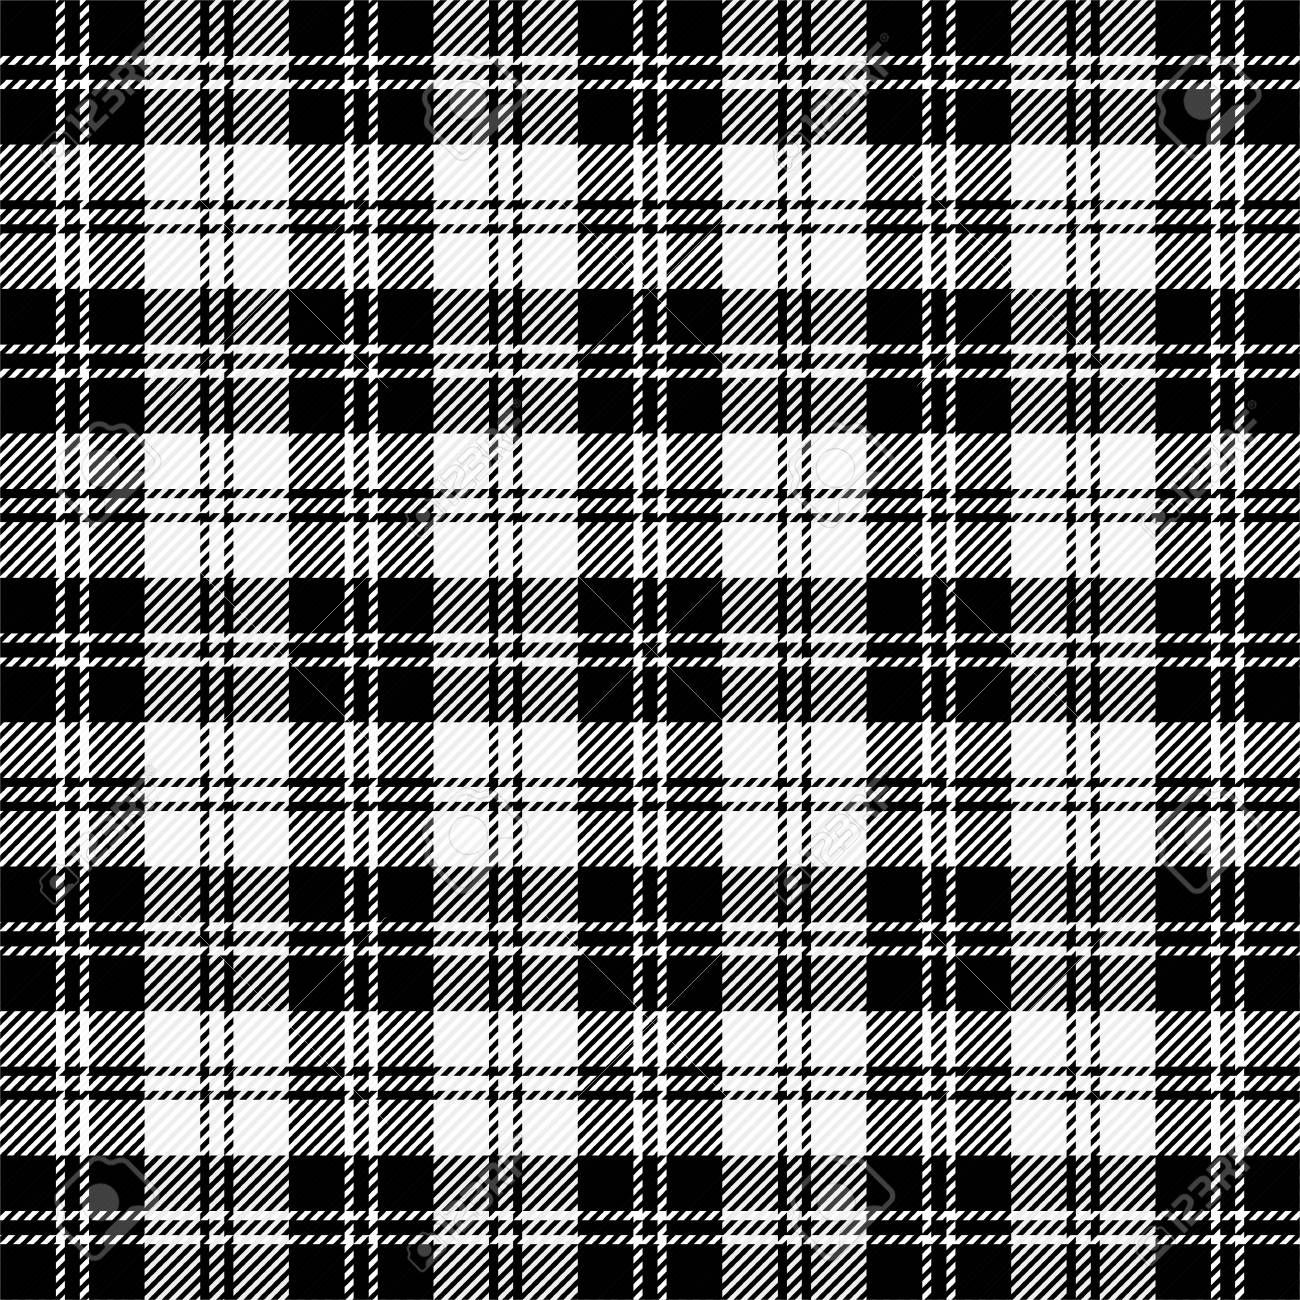 Erskine Black White SCOTTISH CHECK Tartan Fabric Material